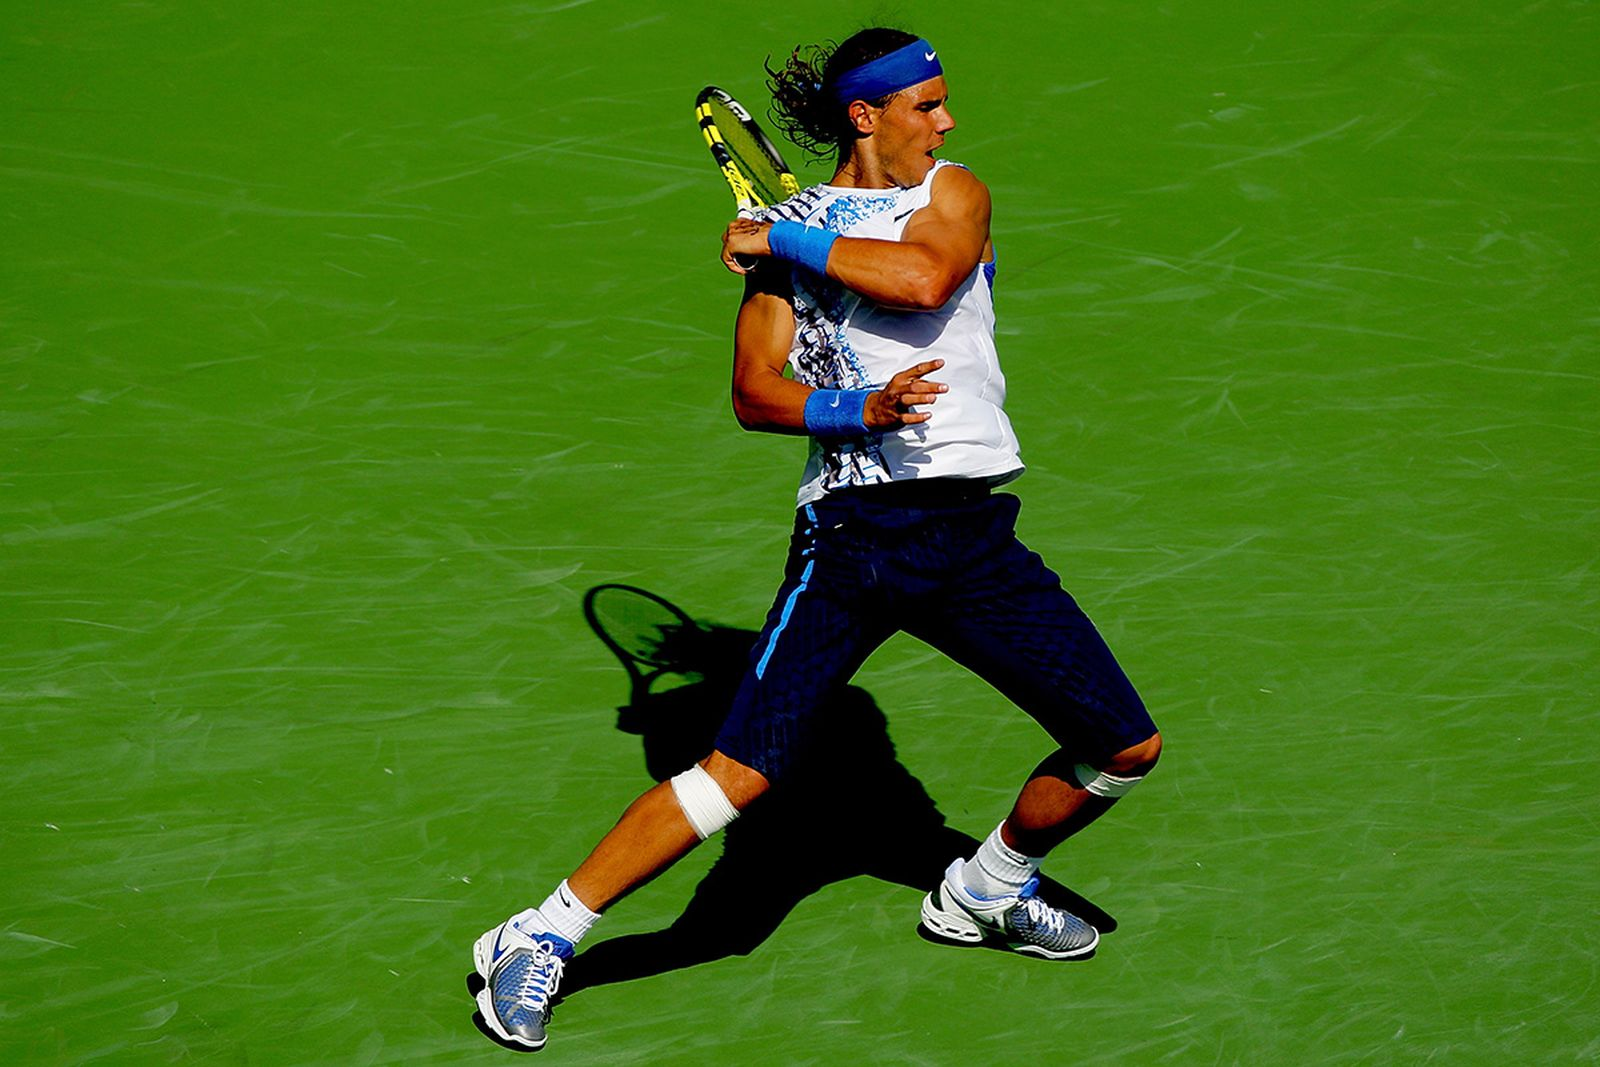 Nadal rocking his quintessential look, Indian Wells 2008